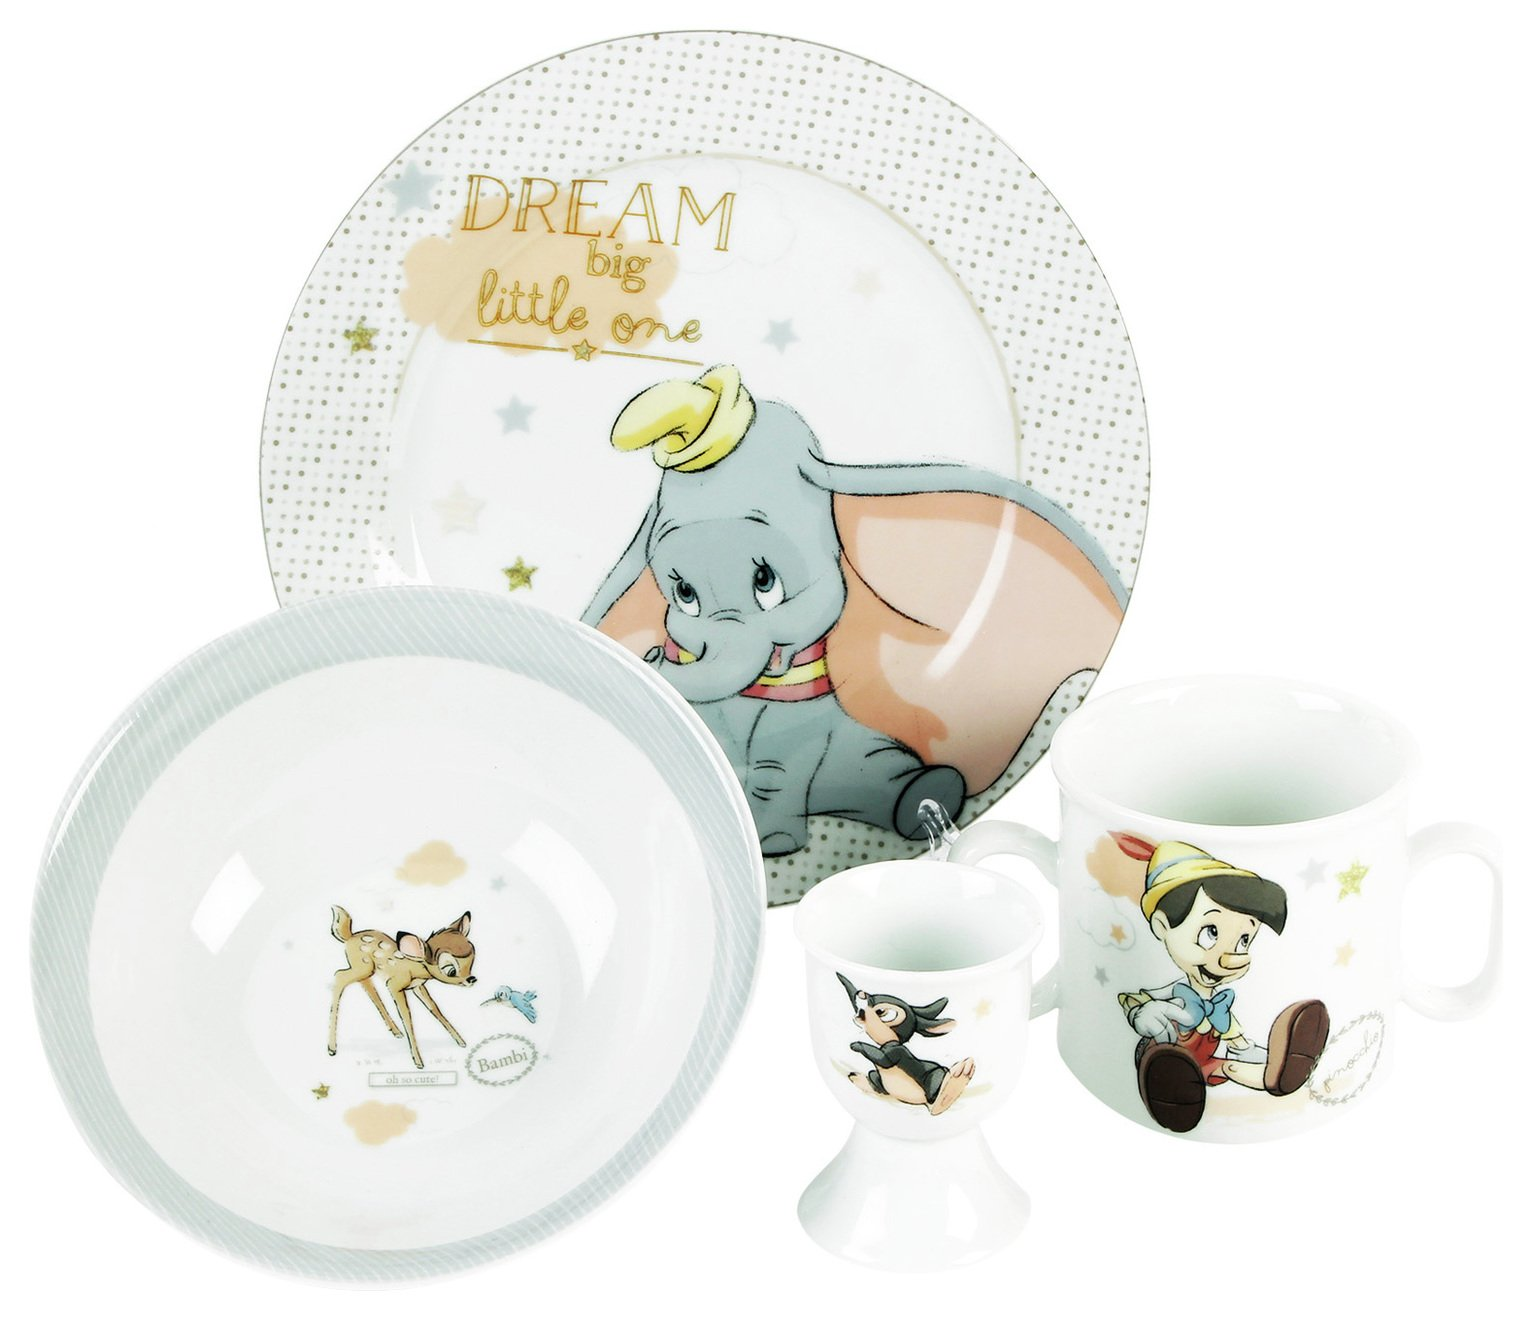 Disney Magical Beginnings Bowl, Plate, Mug and Egg Cup Set